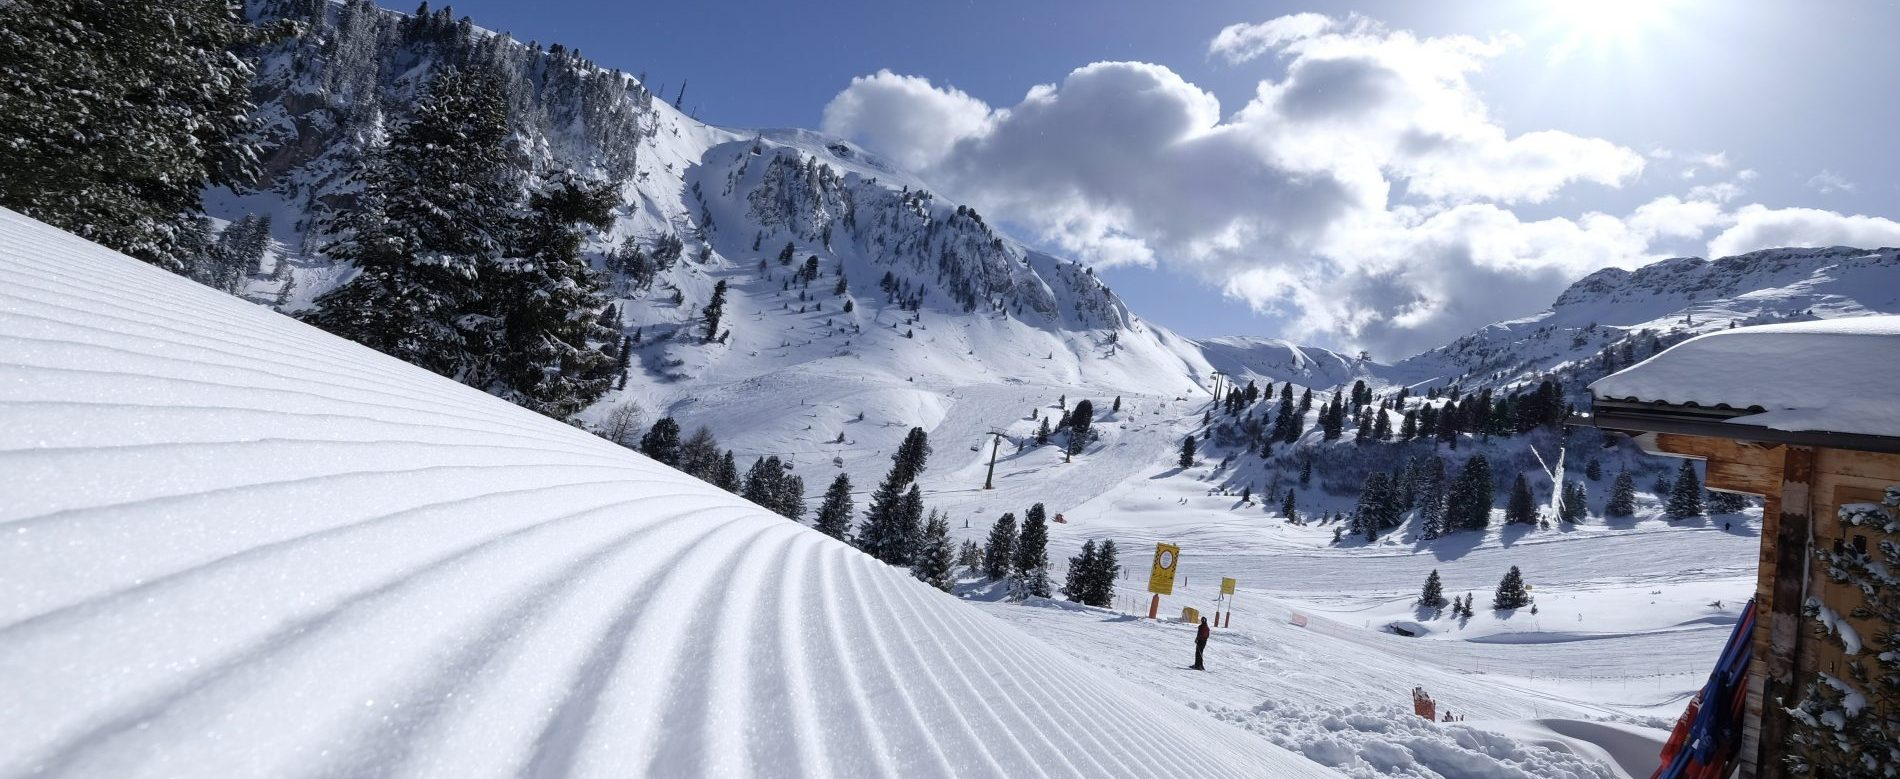 pista-self-time-pampeago-ski-center-latemar-trentino-alto-adige